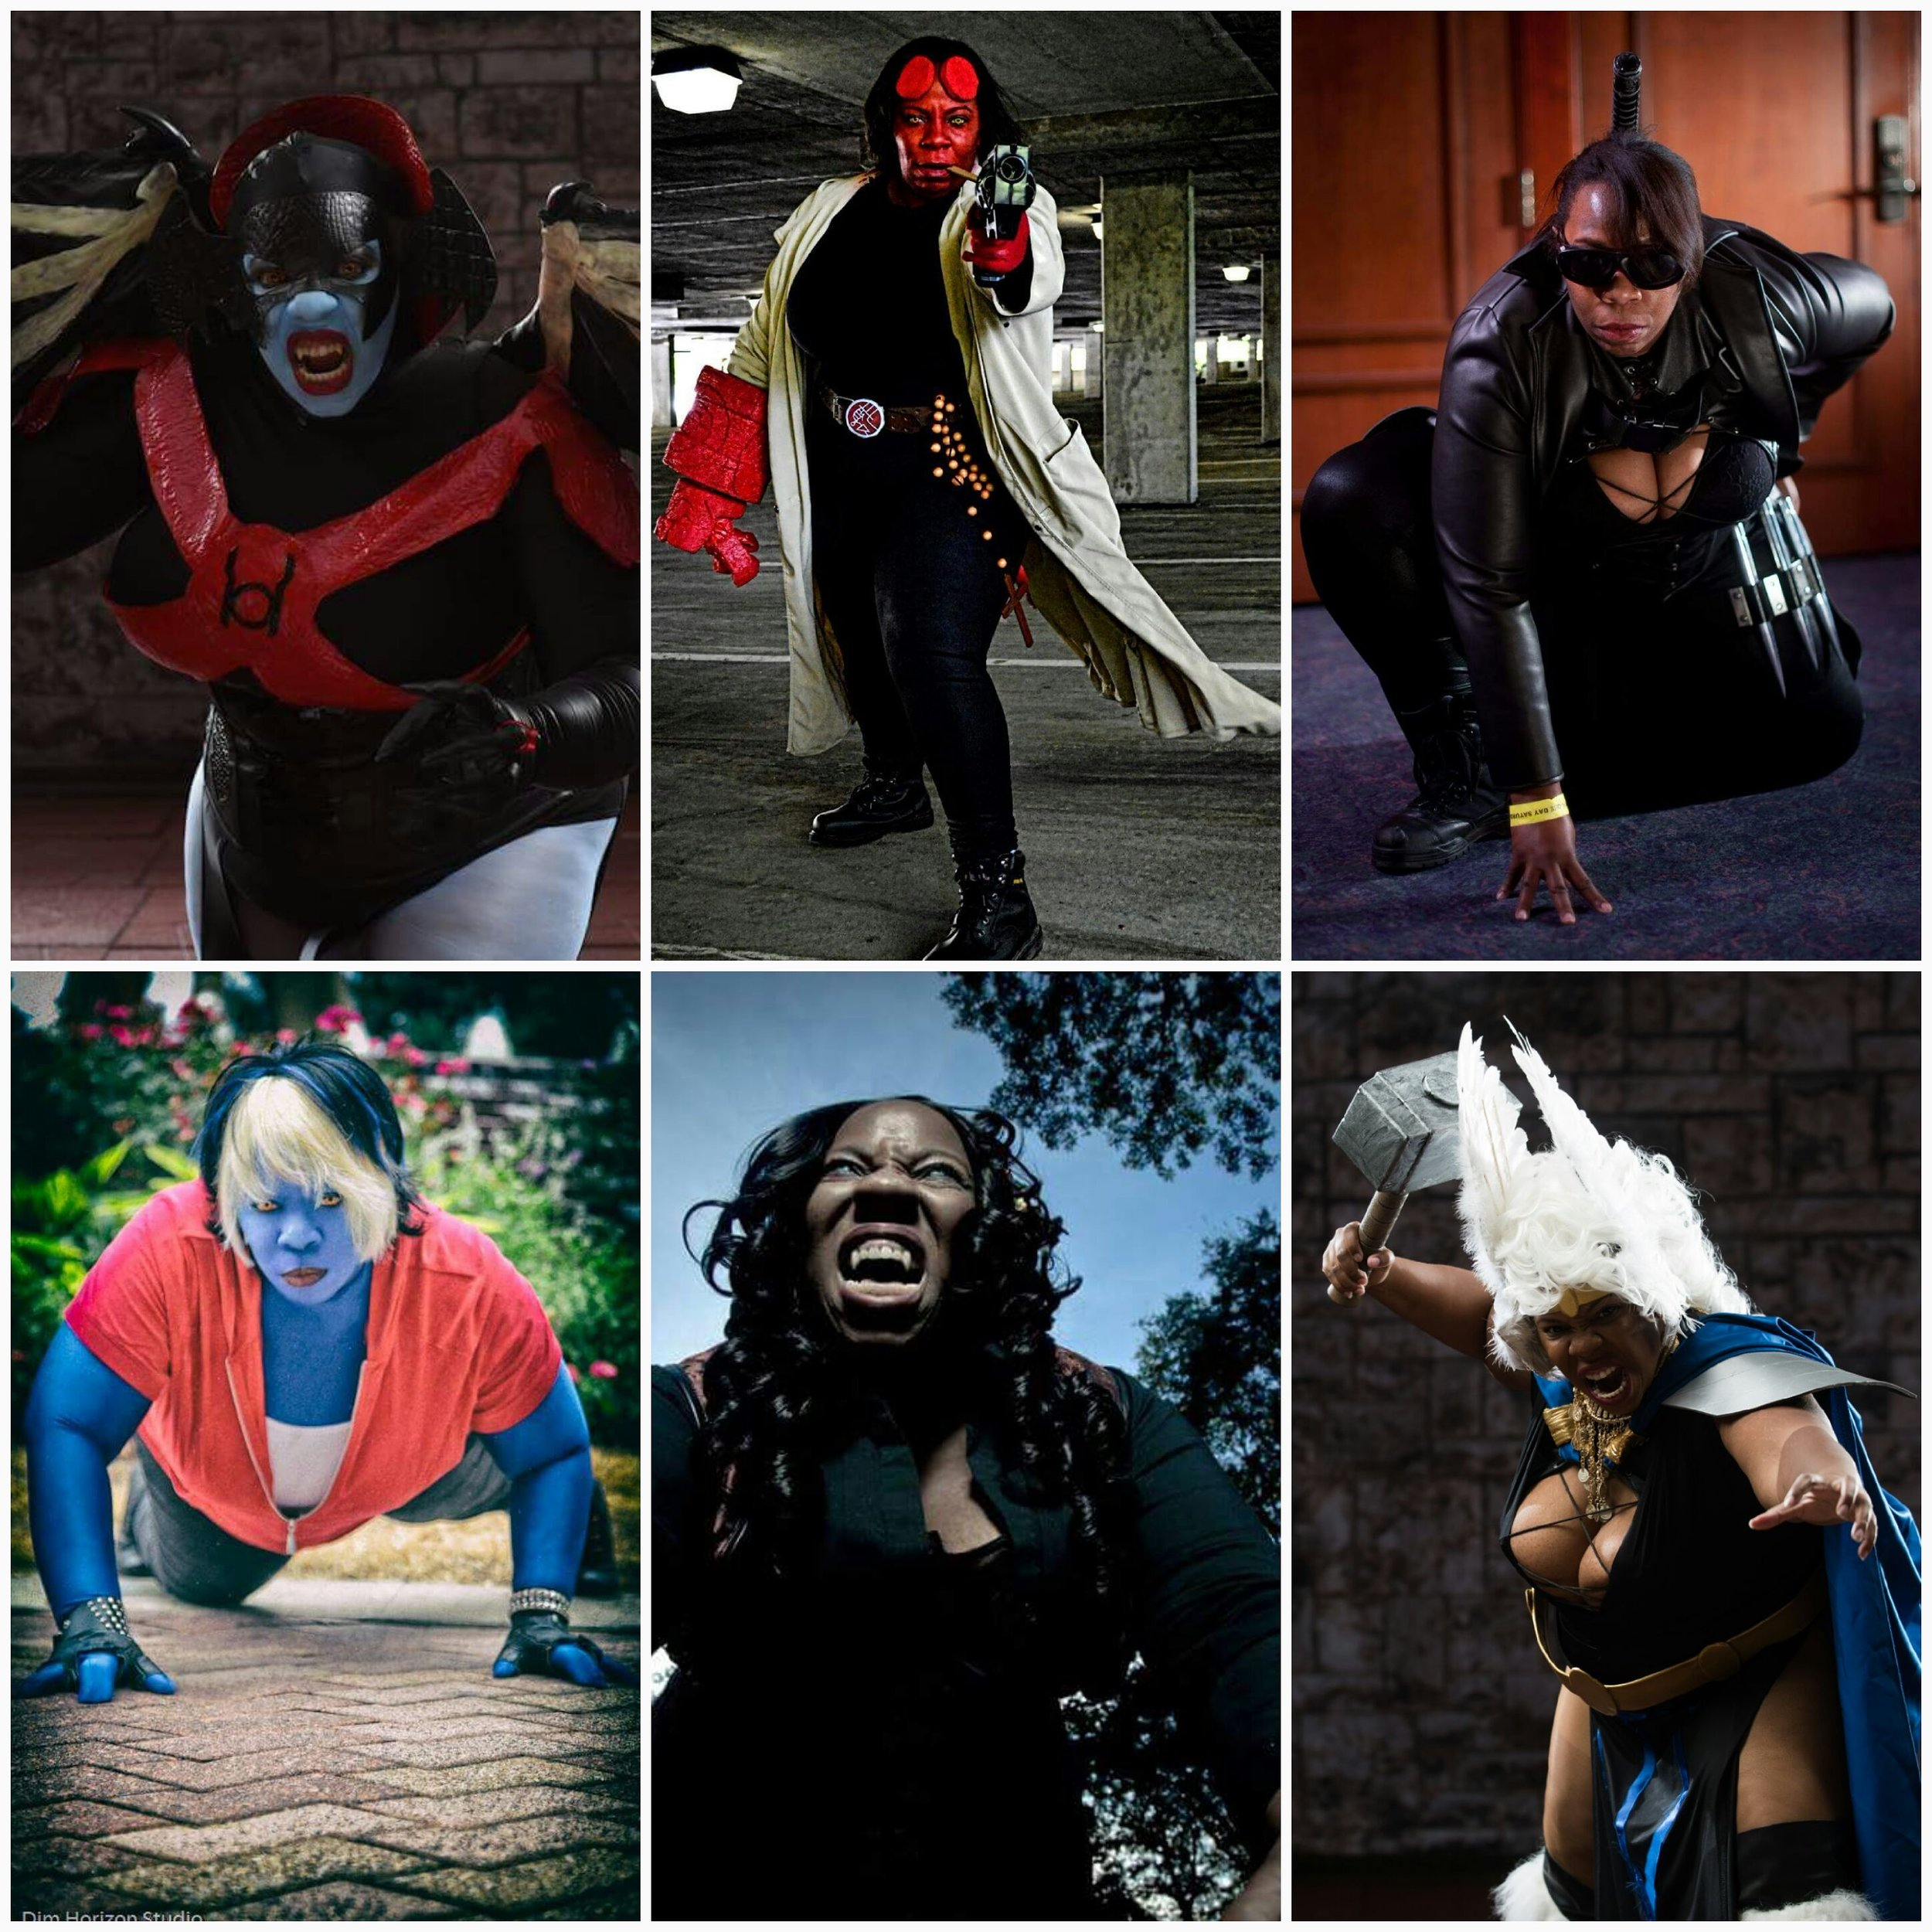 DC's Bleez, Marvel's Blade, and Asgardian Storm photographed by Bryan Humphrey. Hellboy photographed by Girls of the Con. Nocturne photographed by Dim Horizon Studios, and Vampire photographed by Dru Phillips.